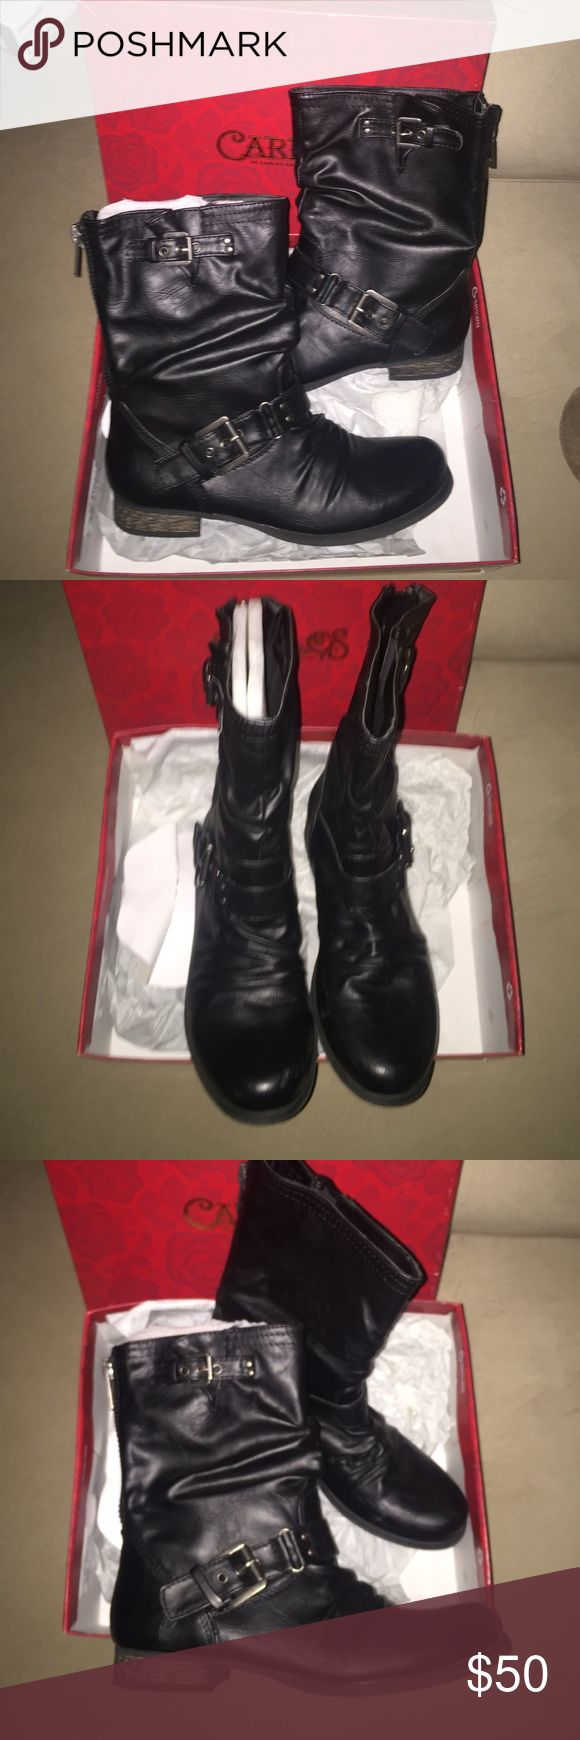 Carlos Santana Boots AUTHENTIC Black 7 1/2 Cute Carlos Santana boots I found hiding in the back of my storage closet! Brand new! Size 7 1/2, Black, zipper in back, easy slide on as well! Carlos Santana Shoes Combat & Moto Boots